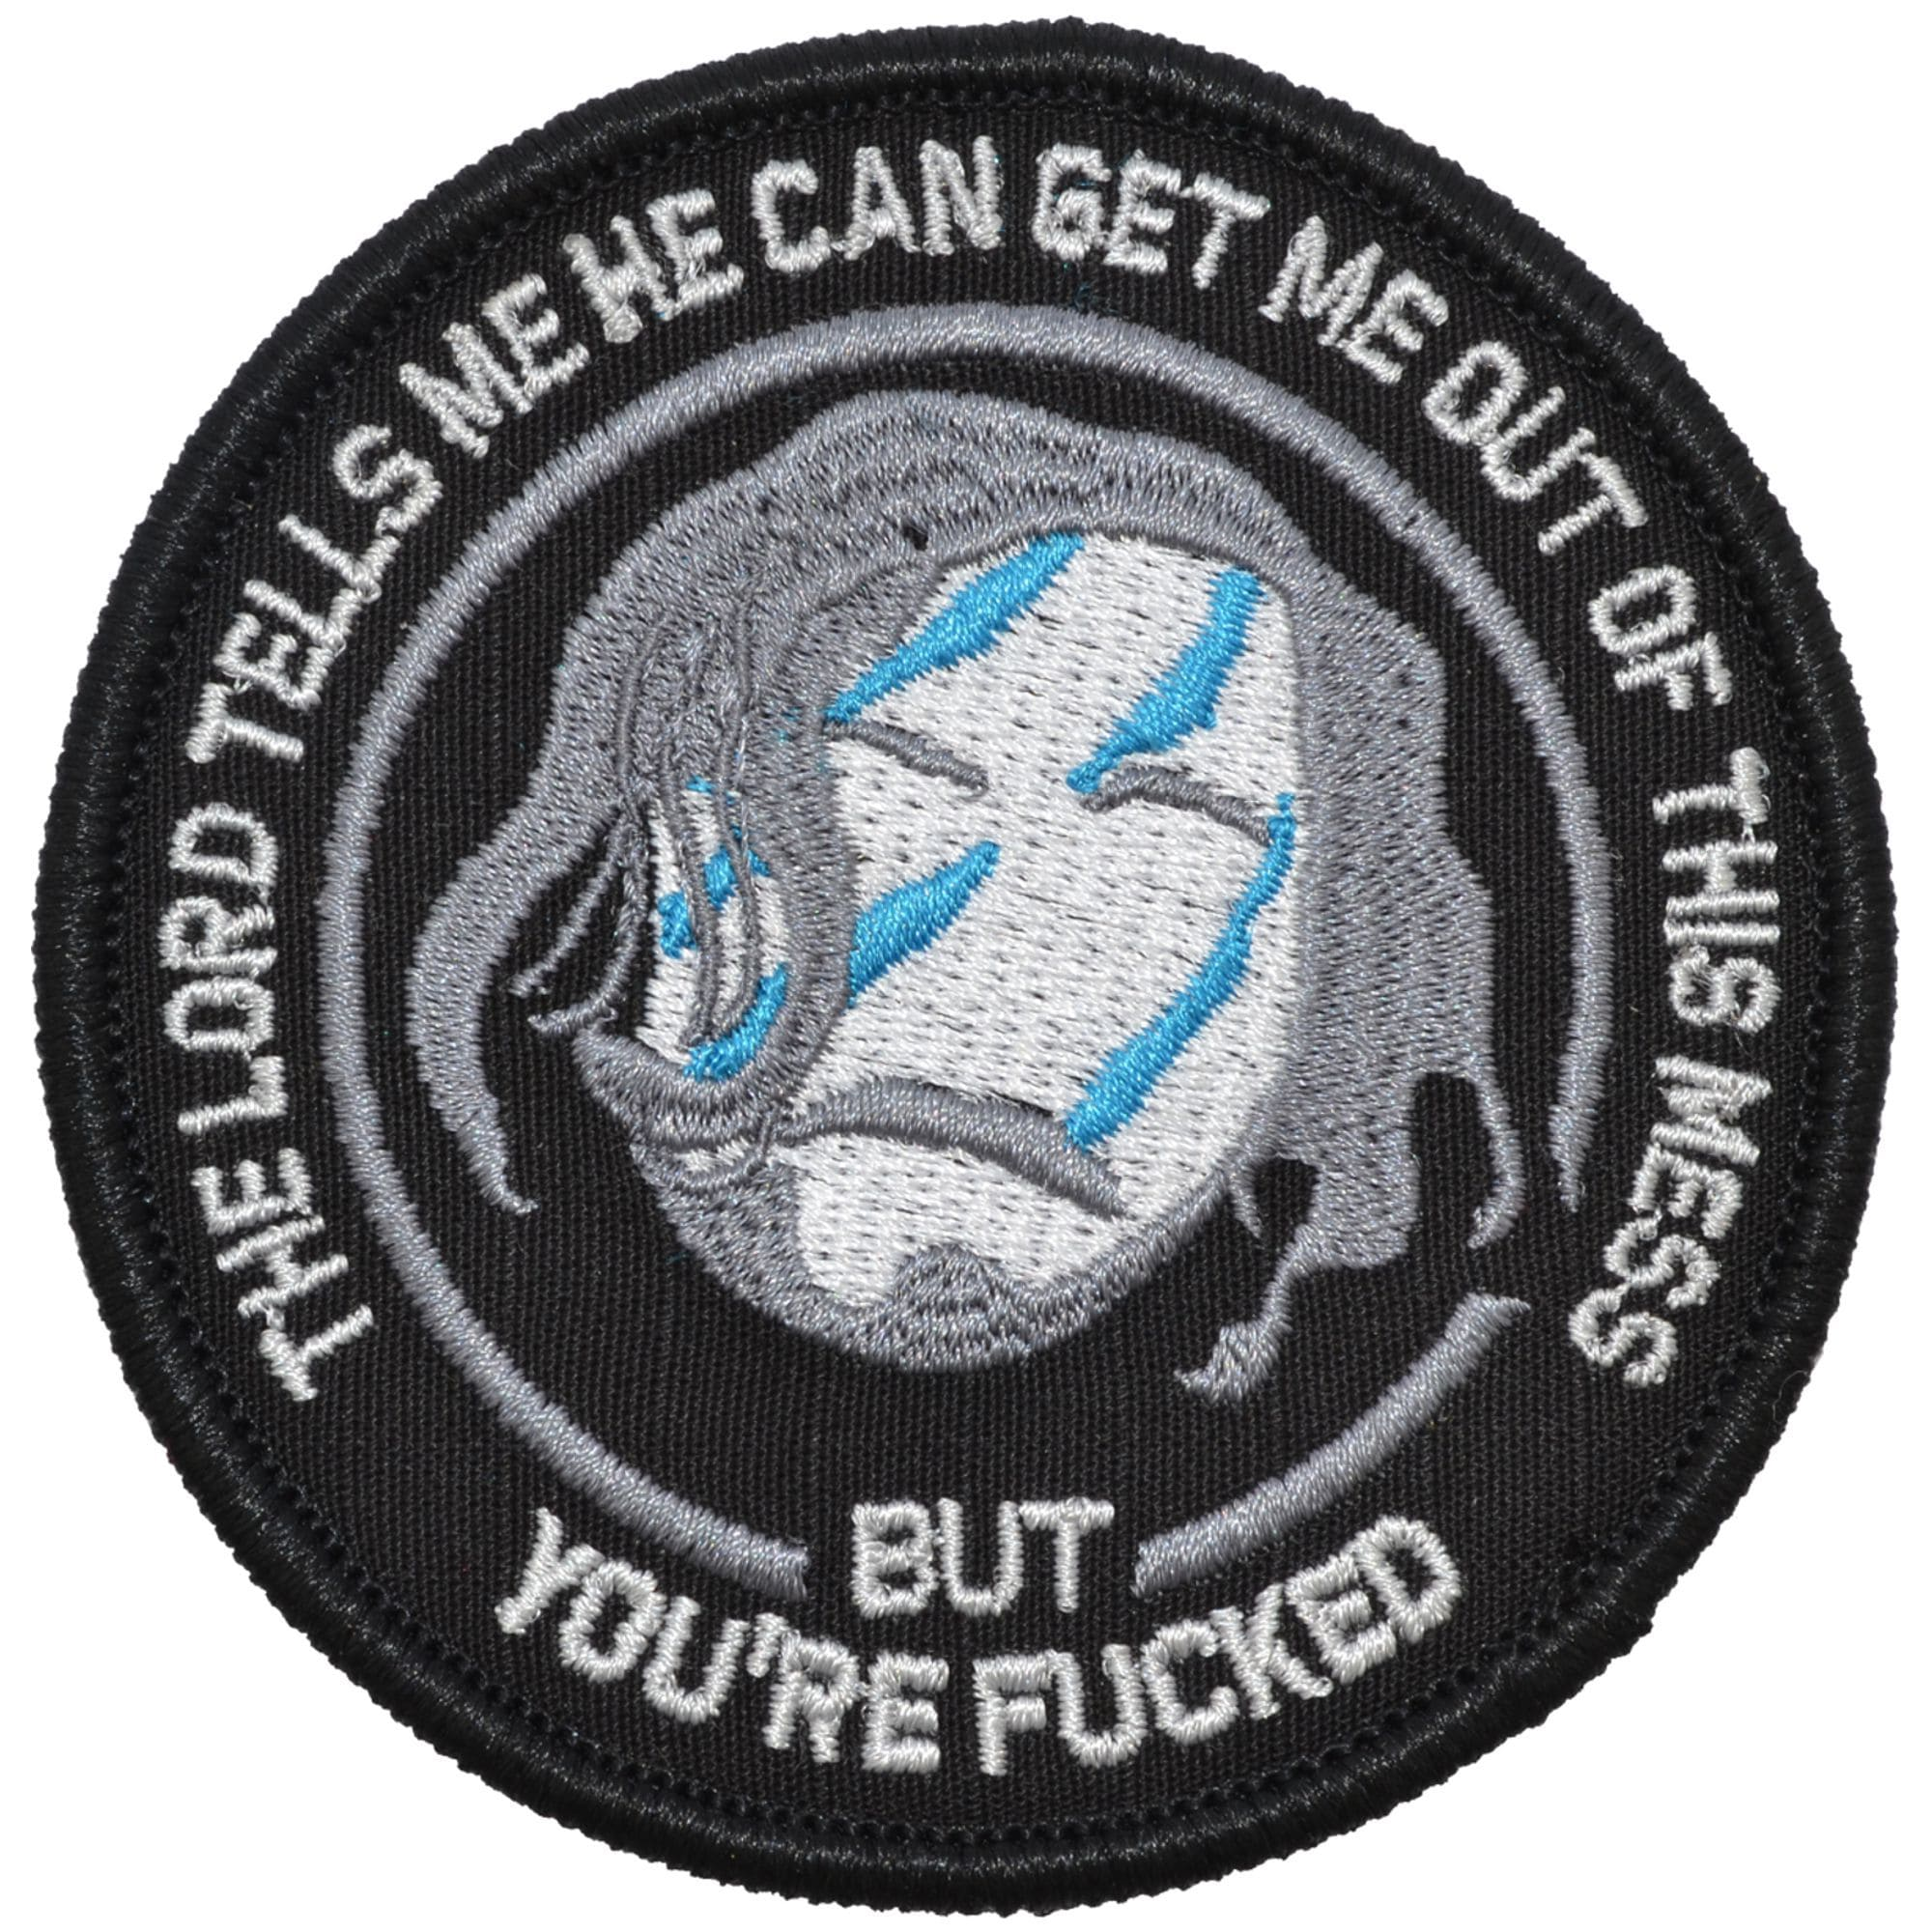 The Lord Tells Me He Can Get Me Out Of This Mess - 3.5 inch Round Patch